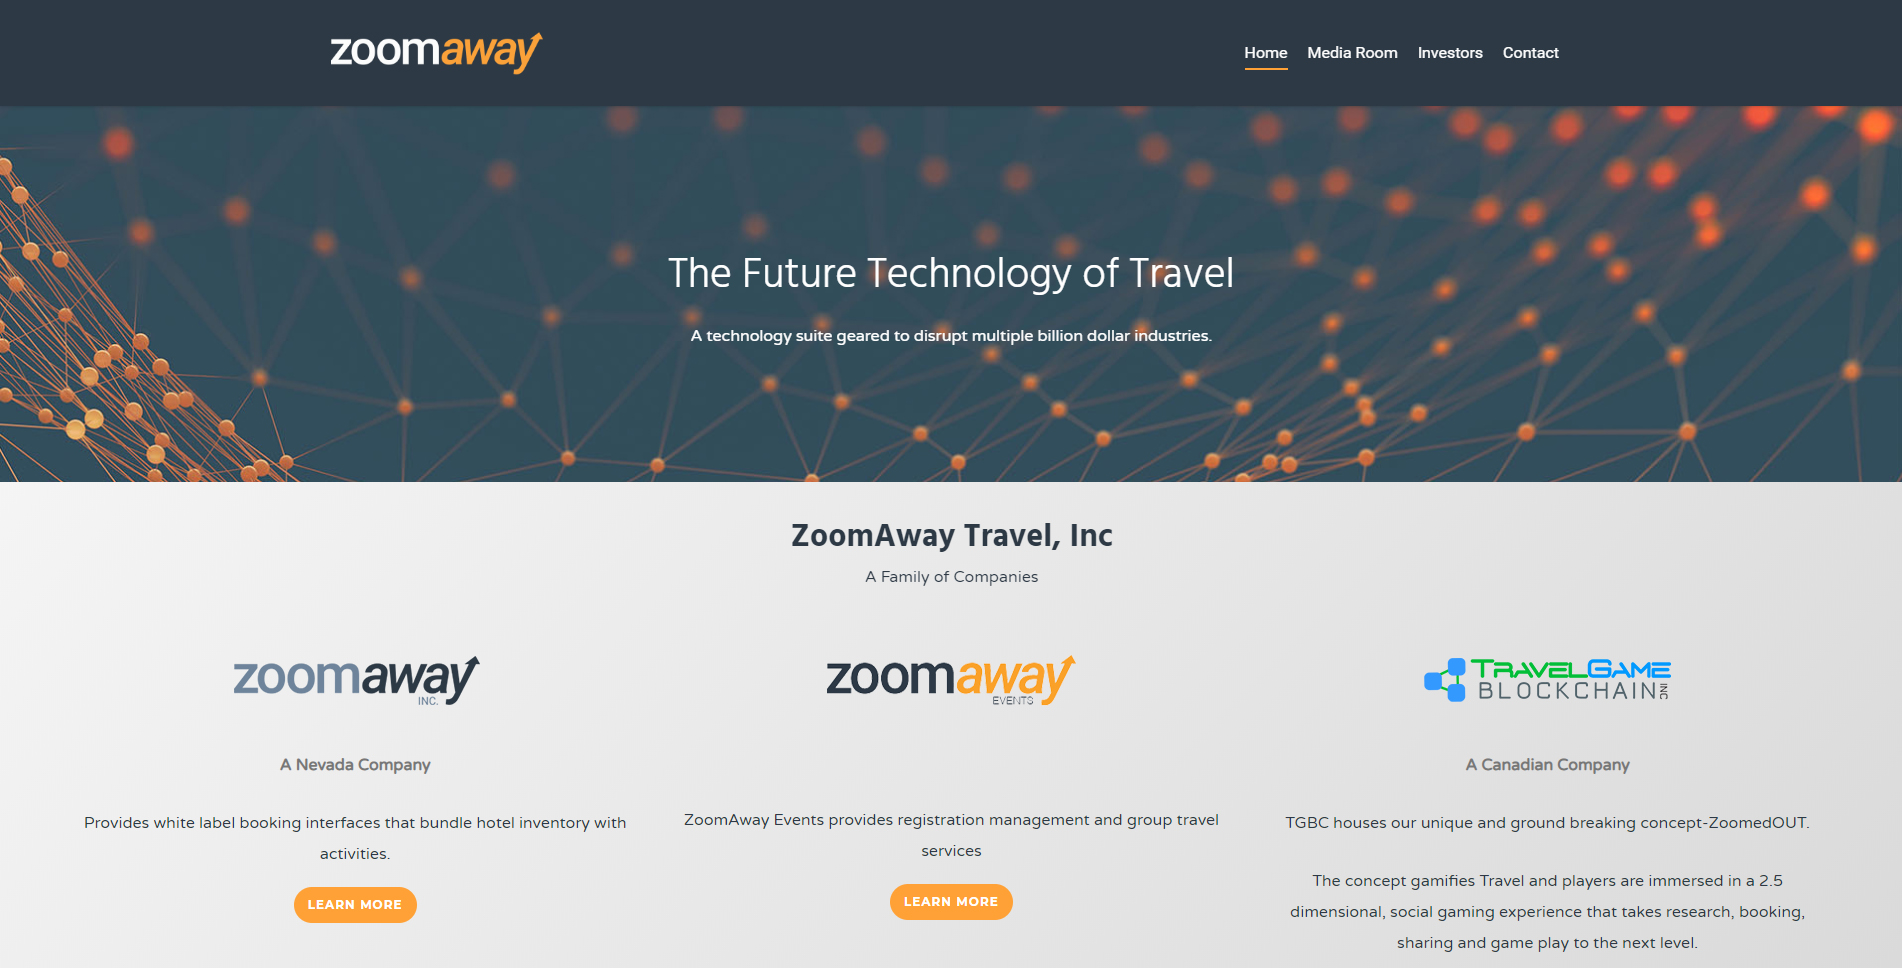 ZoomAway Announces Launch Of New Corporate Website